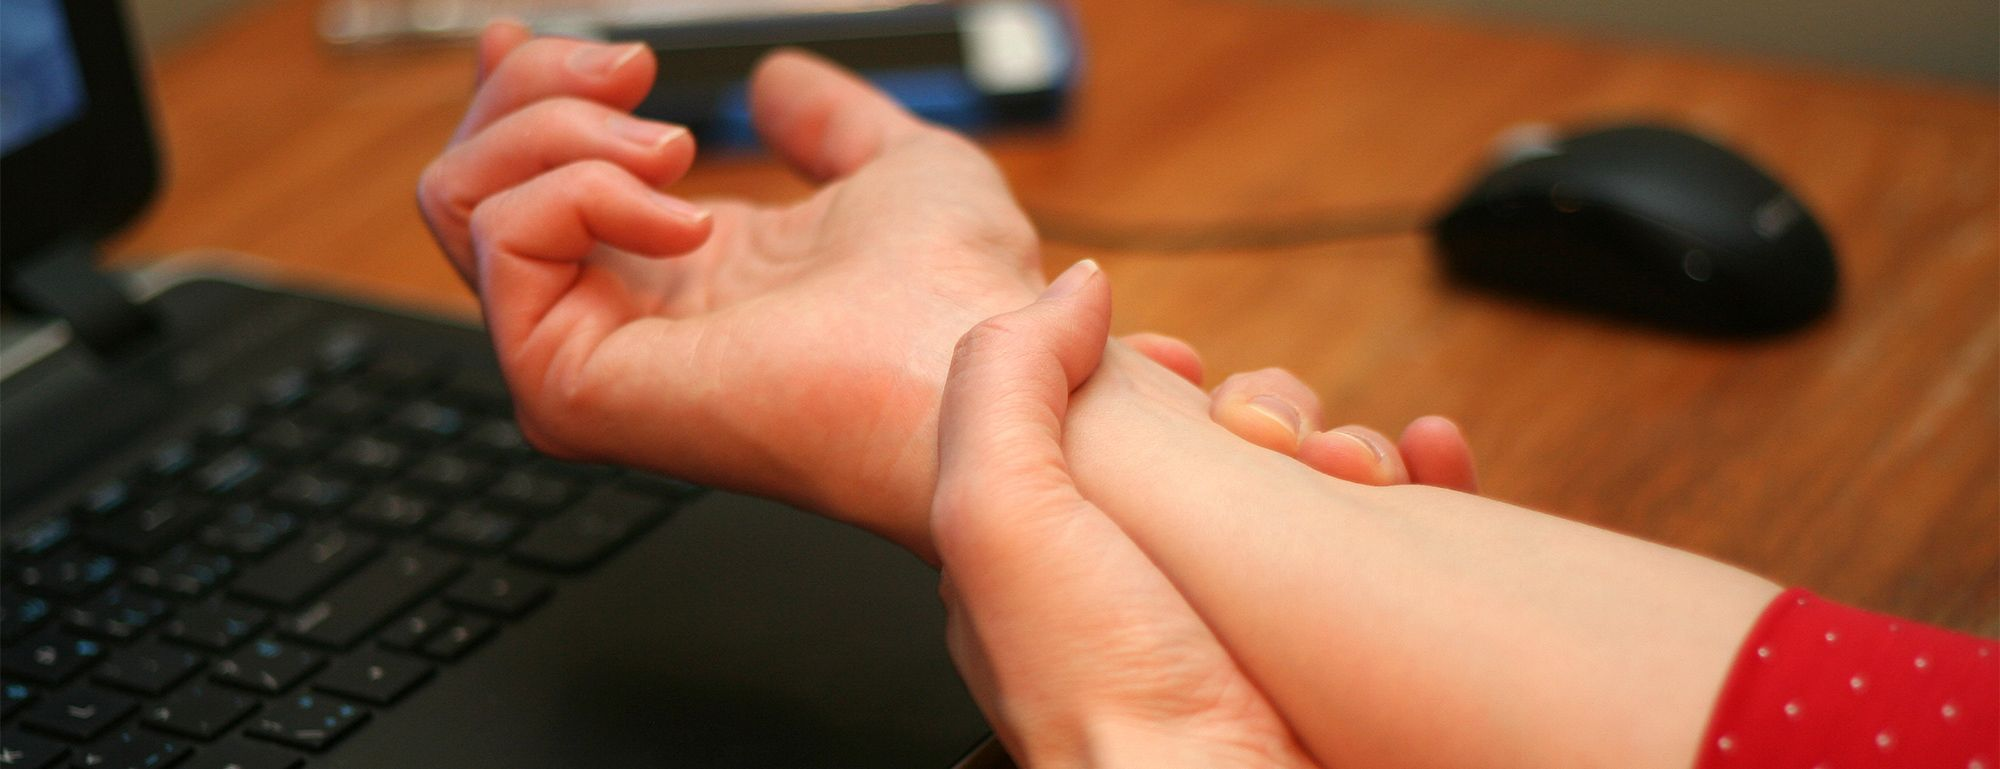 Learning About Carpal Tunnel Syndrome | Chiropractic Care San Diego